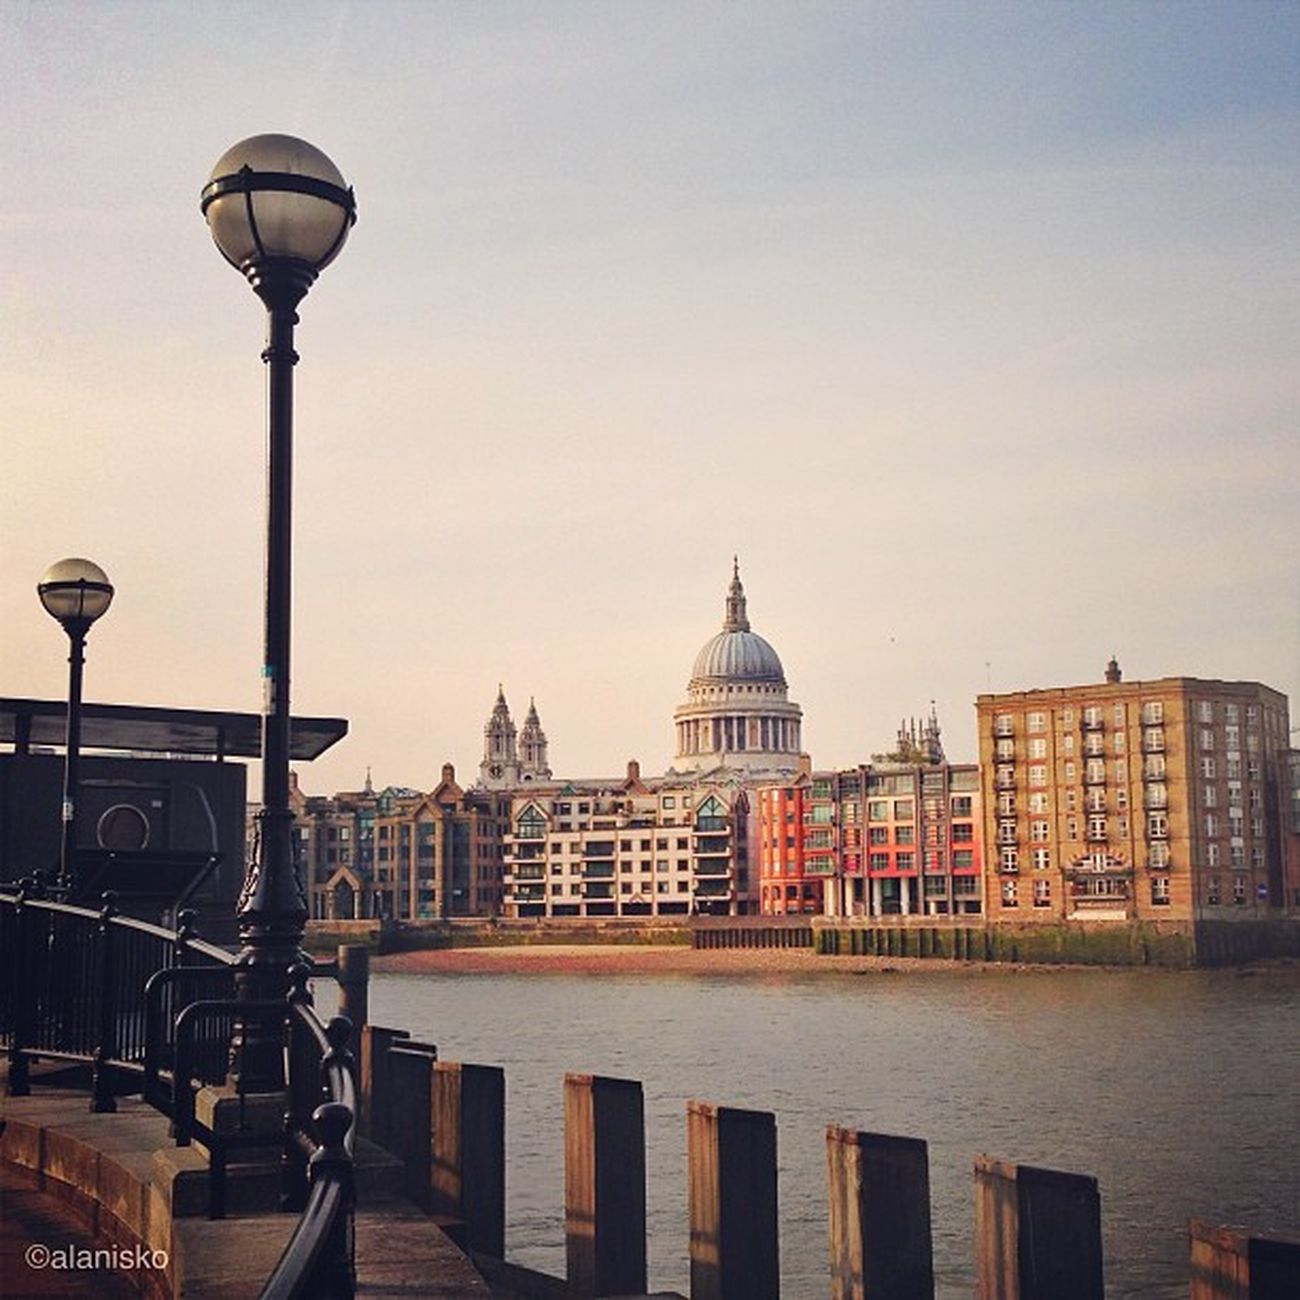 Fort those of you who miss my #london shots, here is one with lovely #sunset and #stpauls ????☀ #alan_in_london #gf_uk #gf_daily #gang_family #insta_uk #igers_london #insta_london #ldn #london #londonpop #london_only #londoners #thisislondon #ic_cities #i Ic_cities Stpaulsloversanonymous Sunset Gf_uk Alan_in_london Insta_london London O2trains Londoners Worldwidephotowalk Stpauls Thisislondon Kewikihighlight_bestsofar Gang_family Gi_uk Gf_daily Igers_london Londonpop Ig_england LDN Love_london Piclab Ic_cities_london Insta_uk London_only Lom_ten